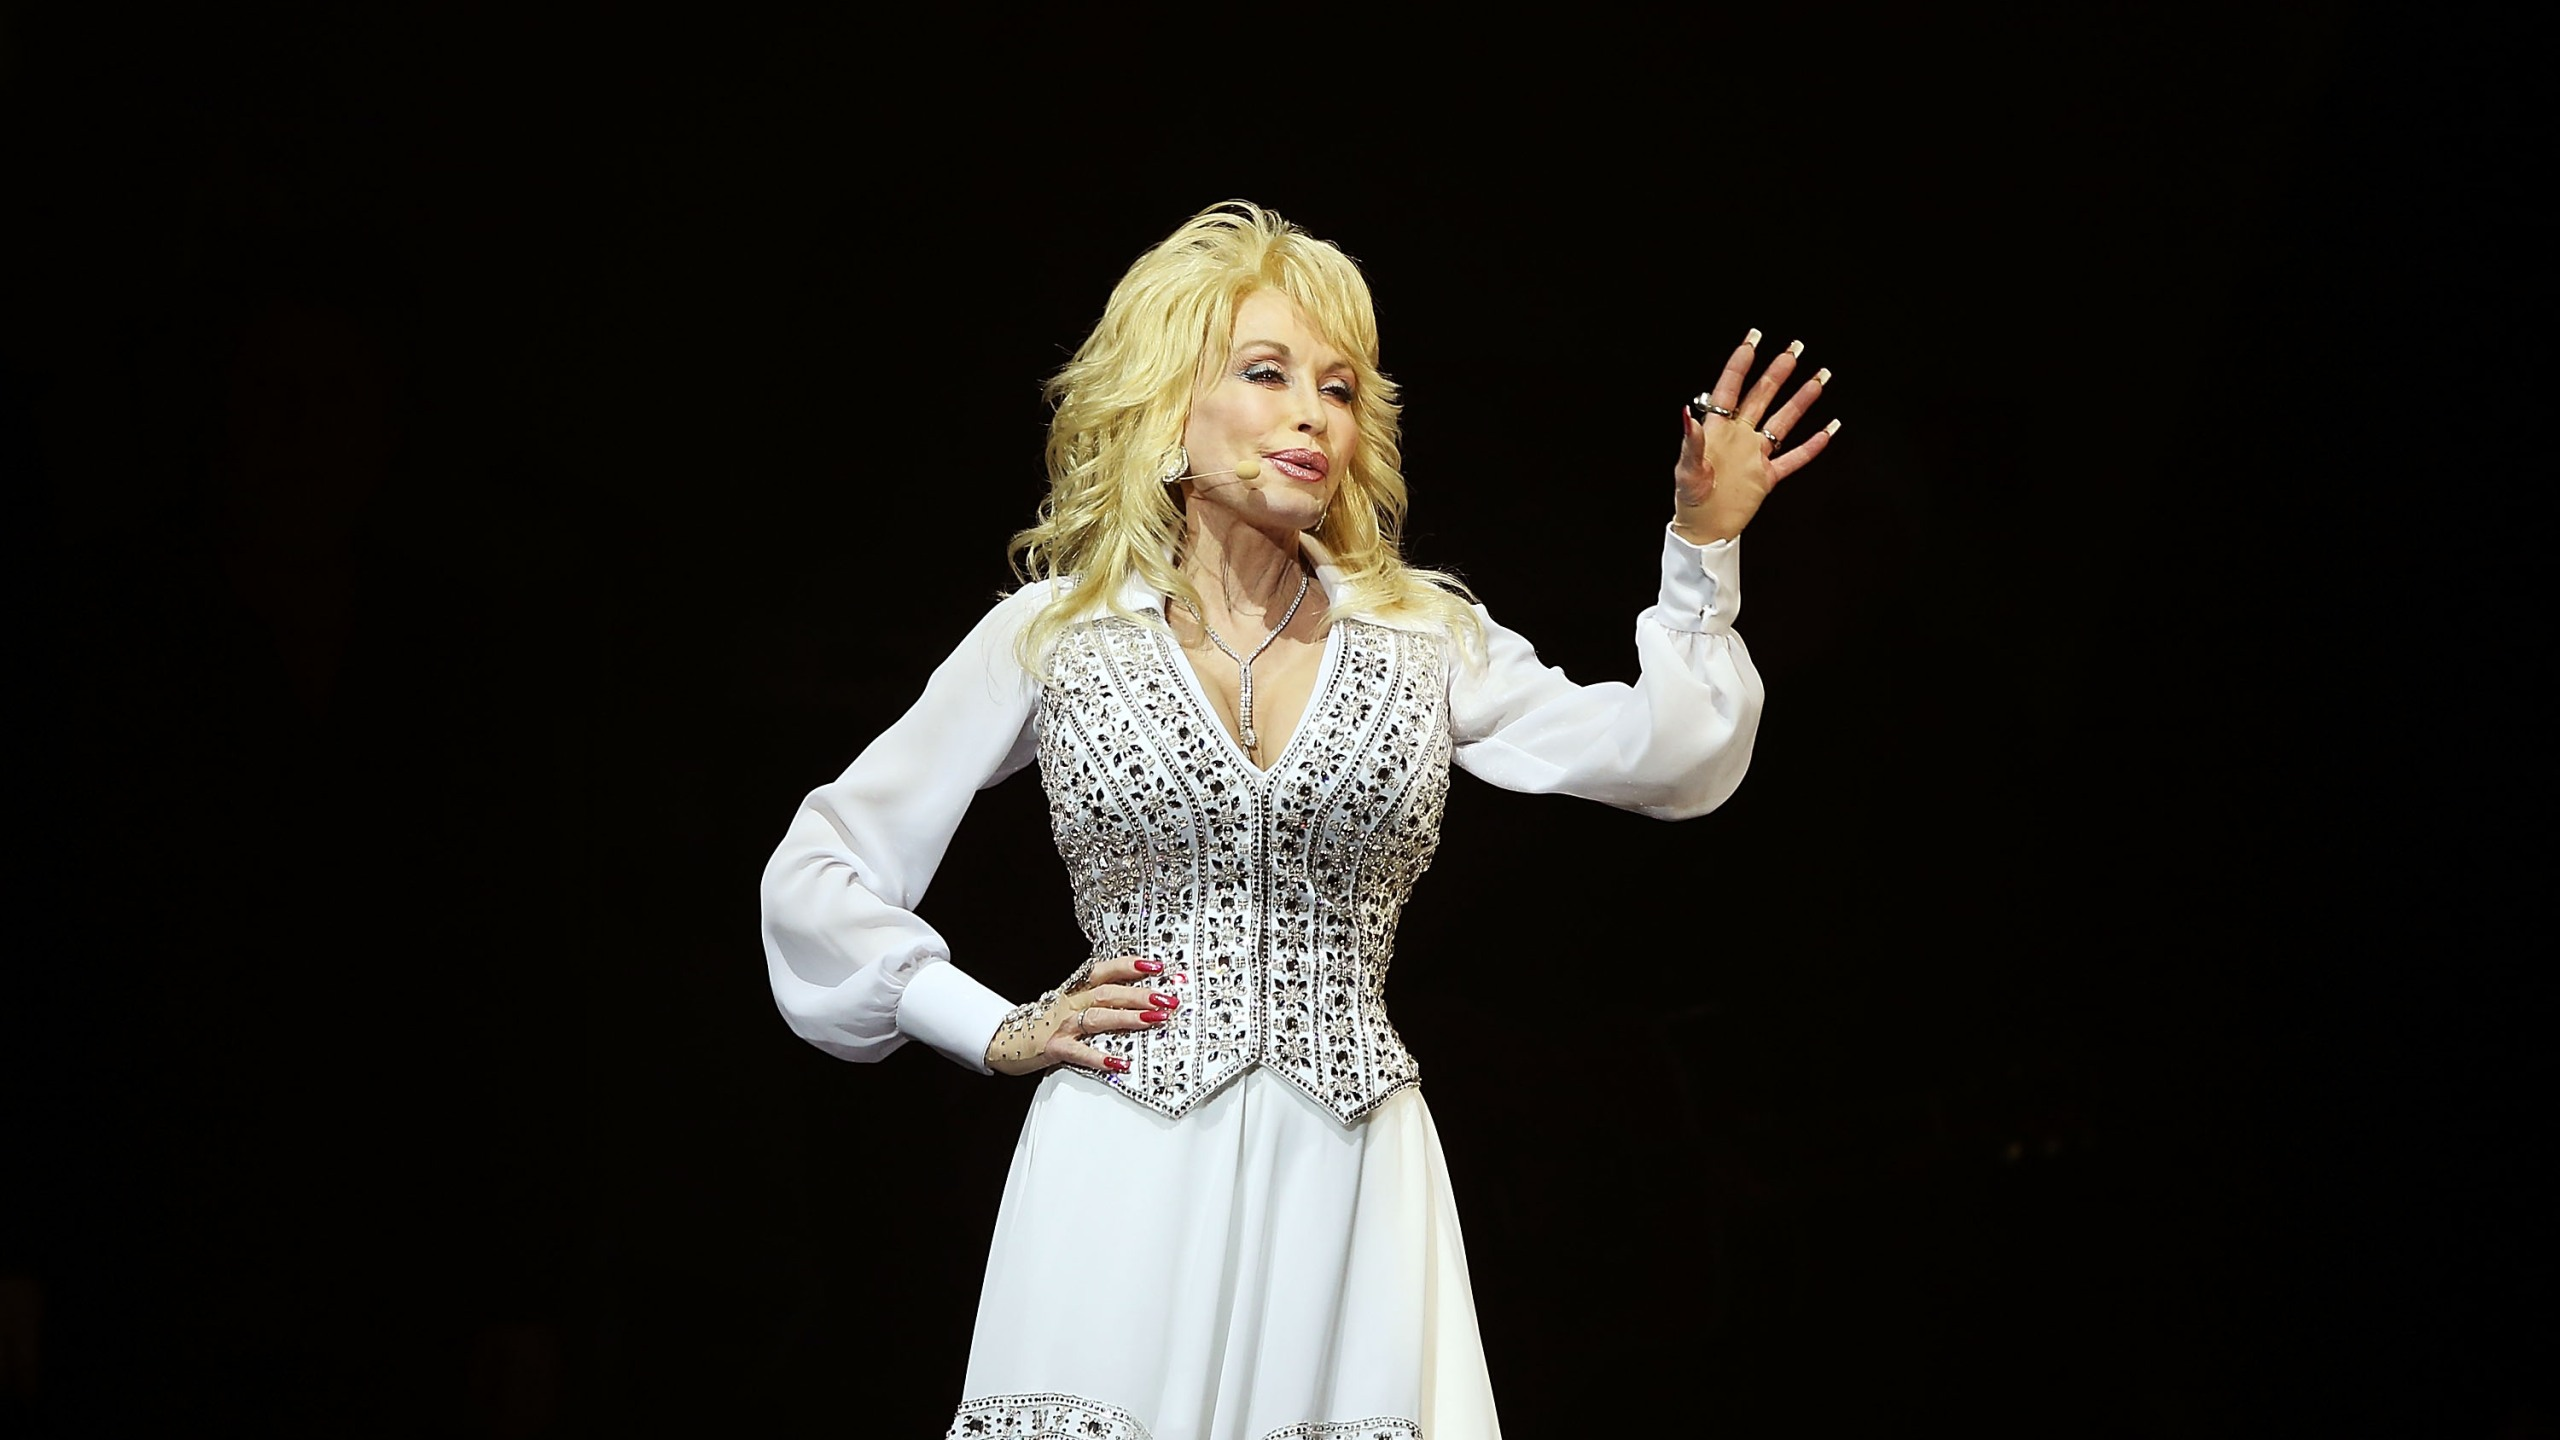 462637373MM020_Dolly_Parton_2014182_1549401118733